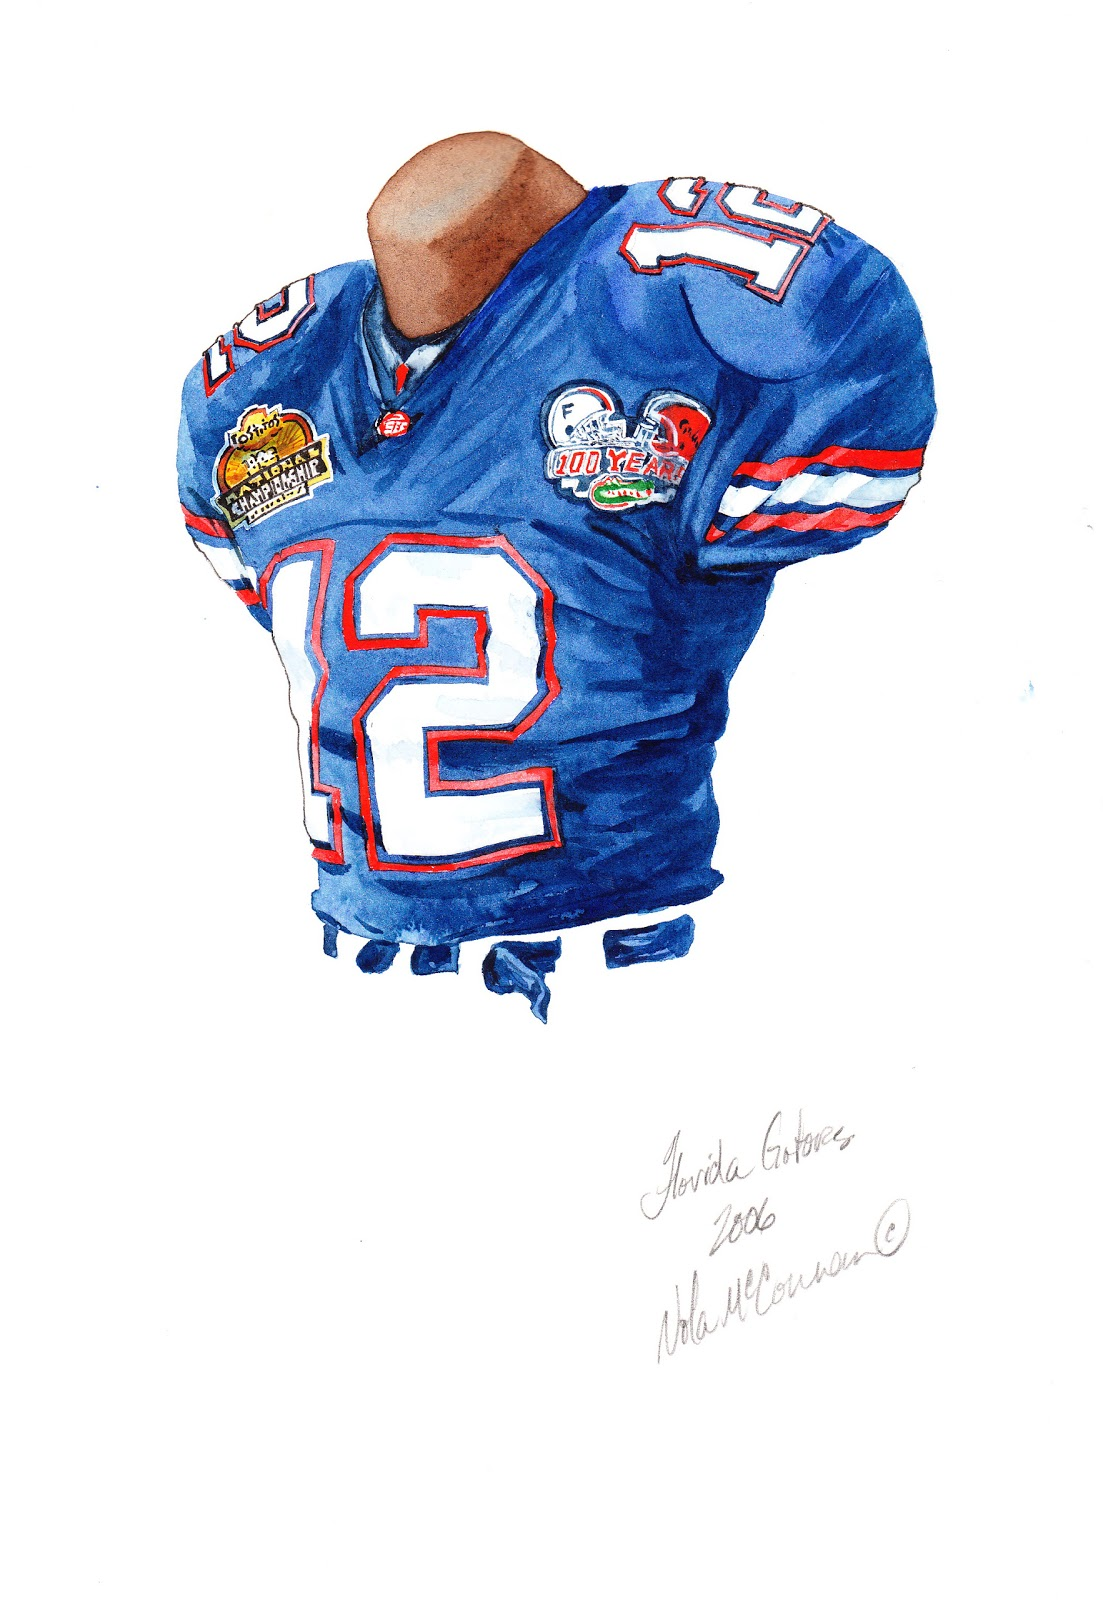 eee91eb04 2006 University of Florida Gators football uniform original art for sale